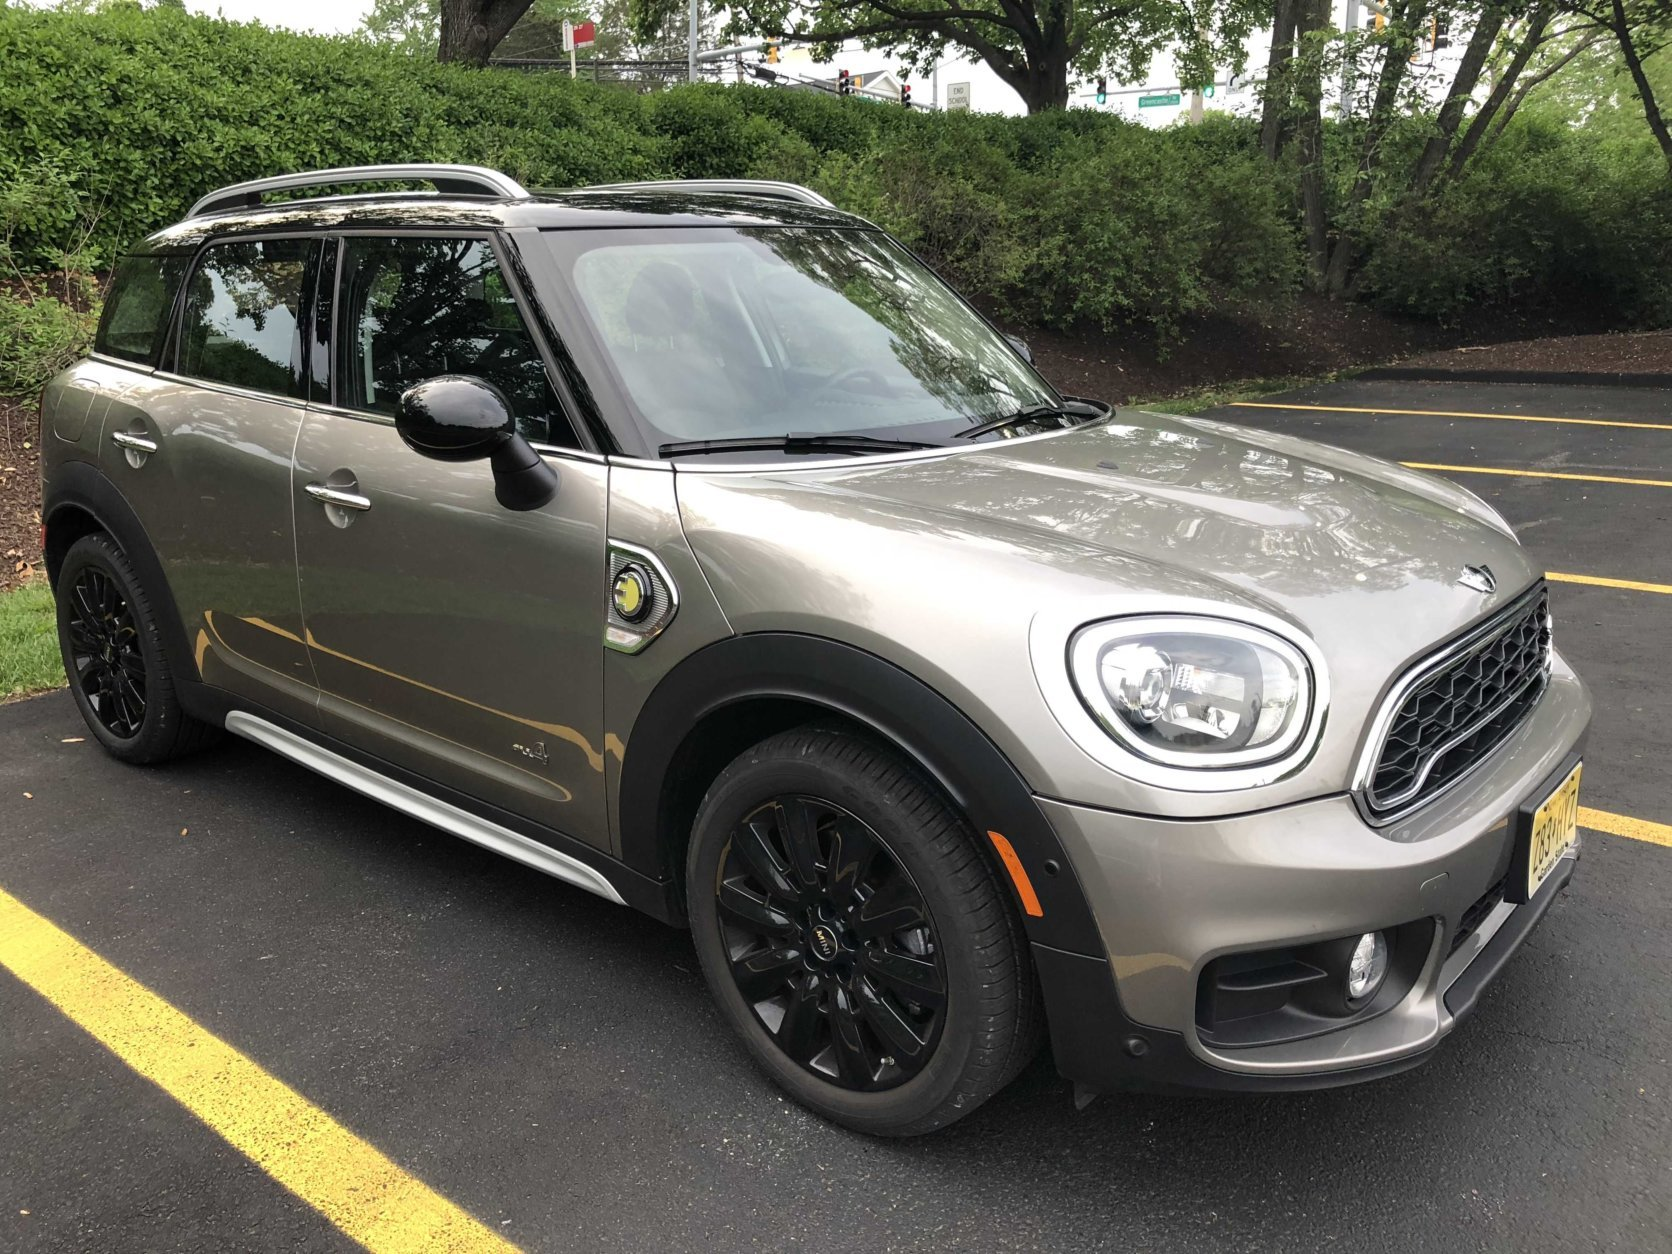 The MiNi Cooper S E Countryman ALL4 is a plug-in hybrid version of the popular compact crossover. (WTOP/Mike Paris)